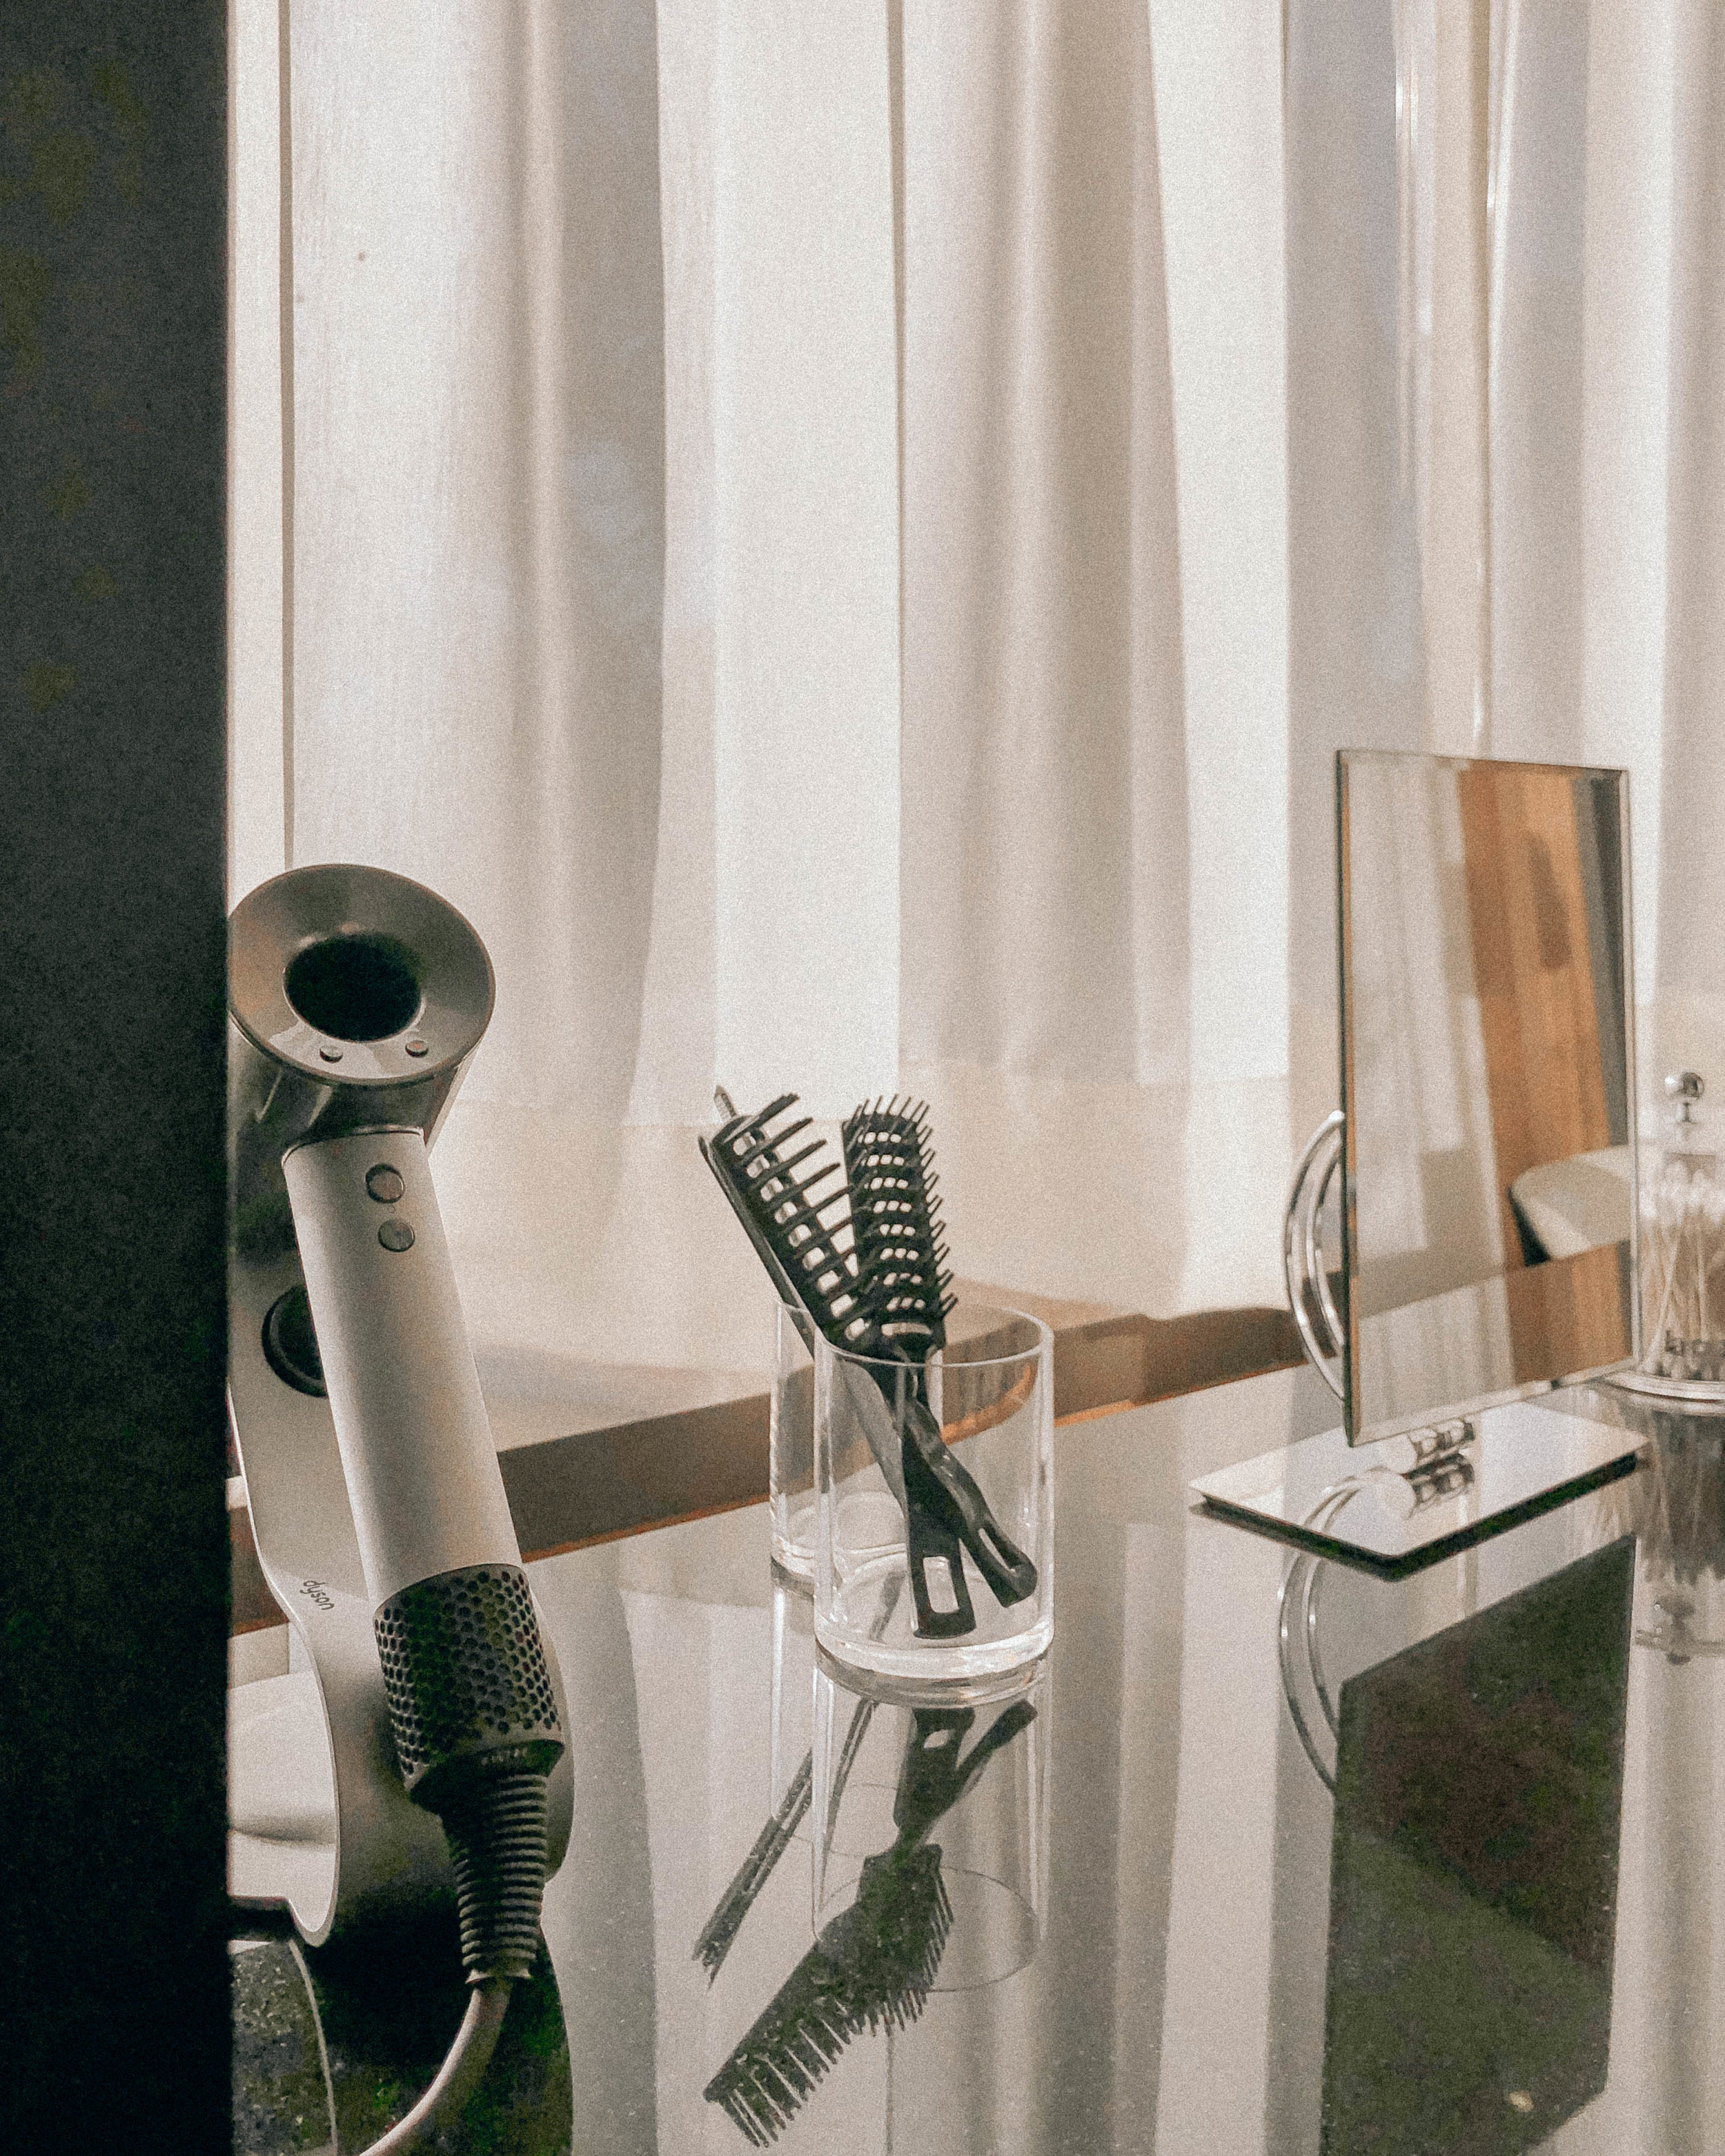 Dyson hairdryers are also available in each guest room.